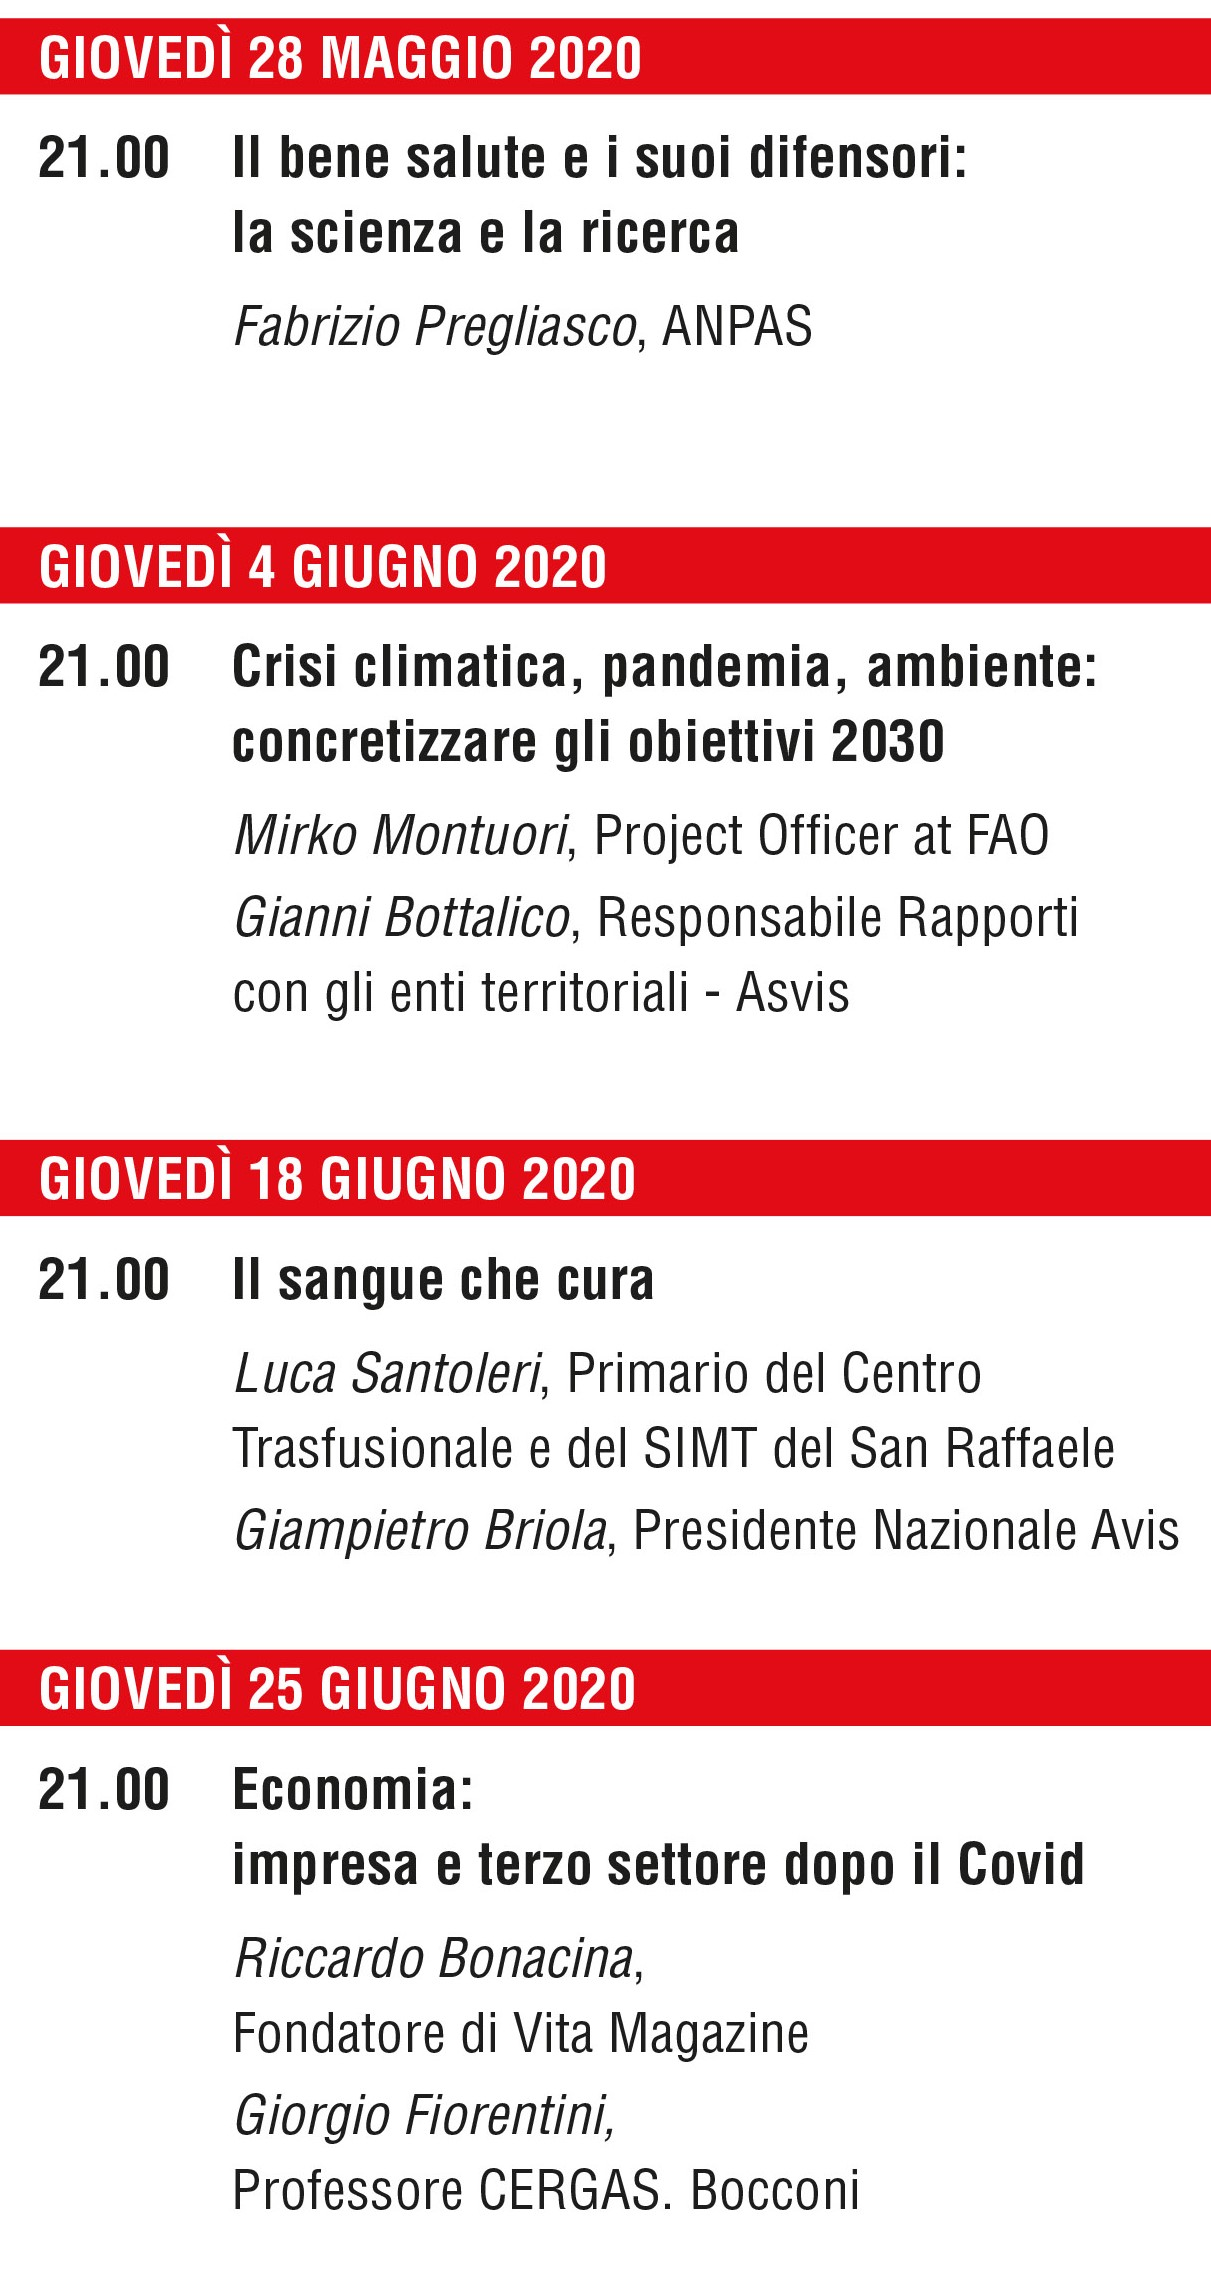 MemVarasi2020 Reloaded Relatori